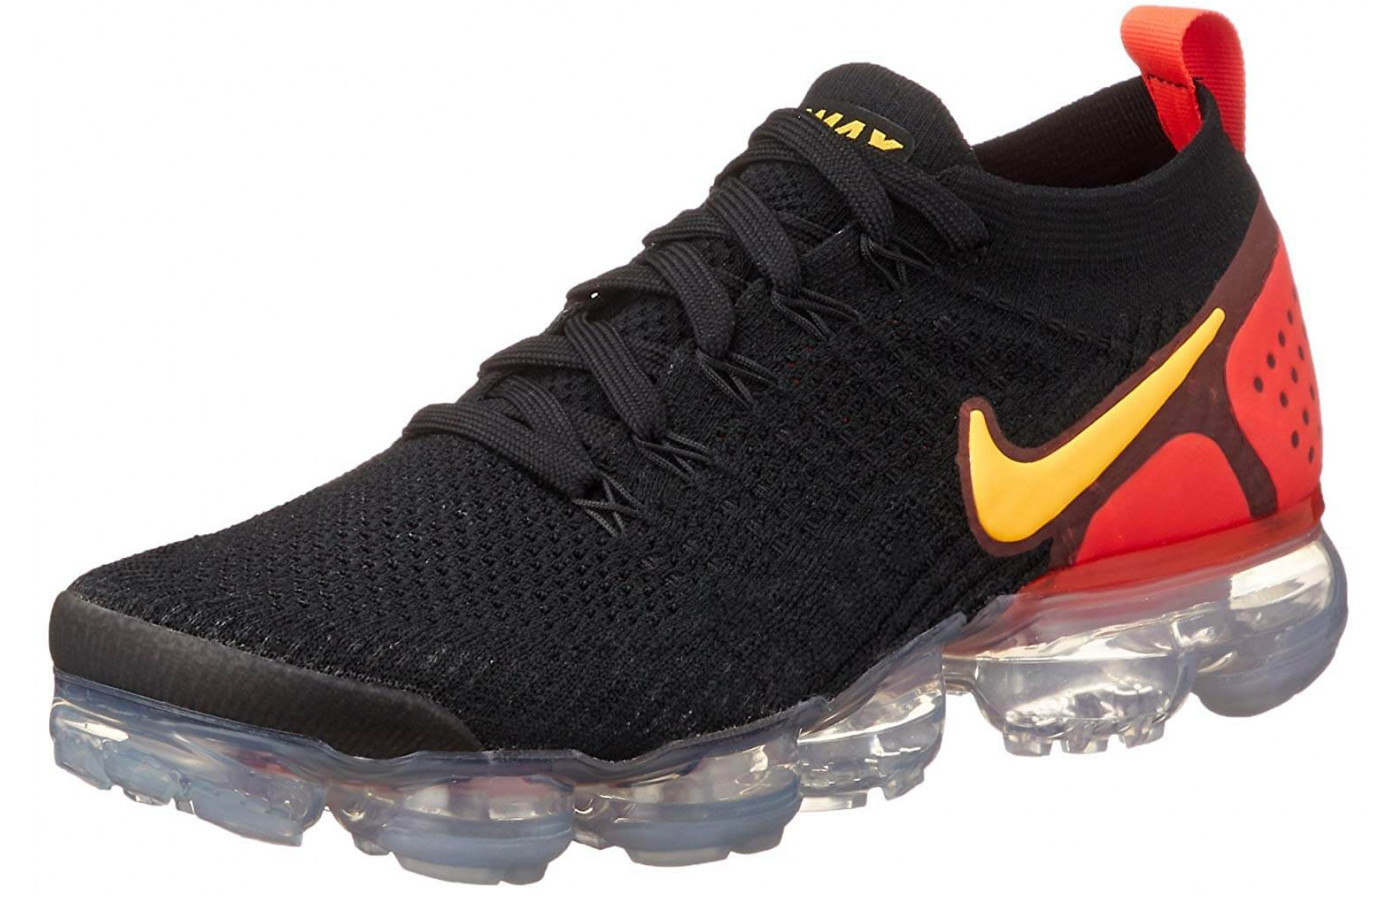 9801ced293f1a Nike Air VaporMax Flyknit 2 - To Buy or Not in May 2019